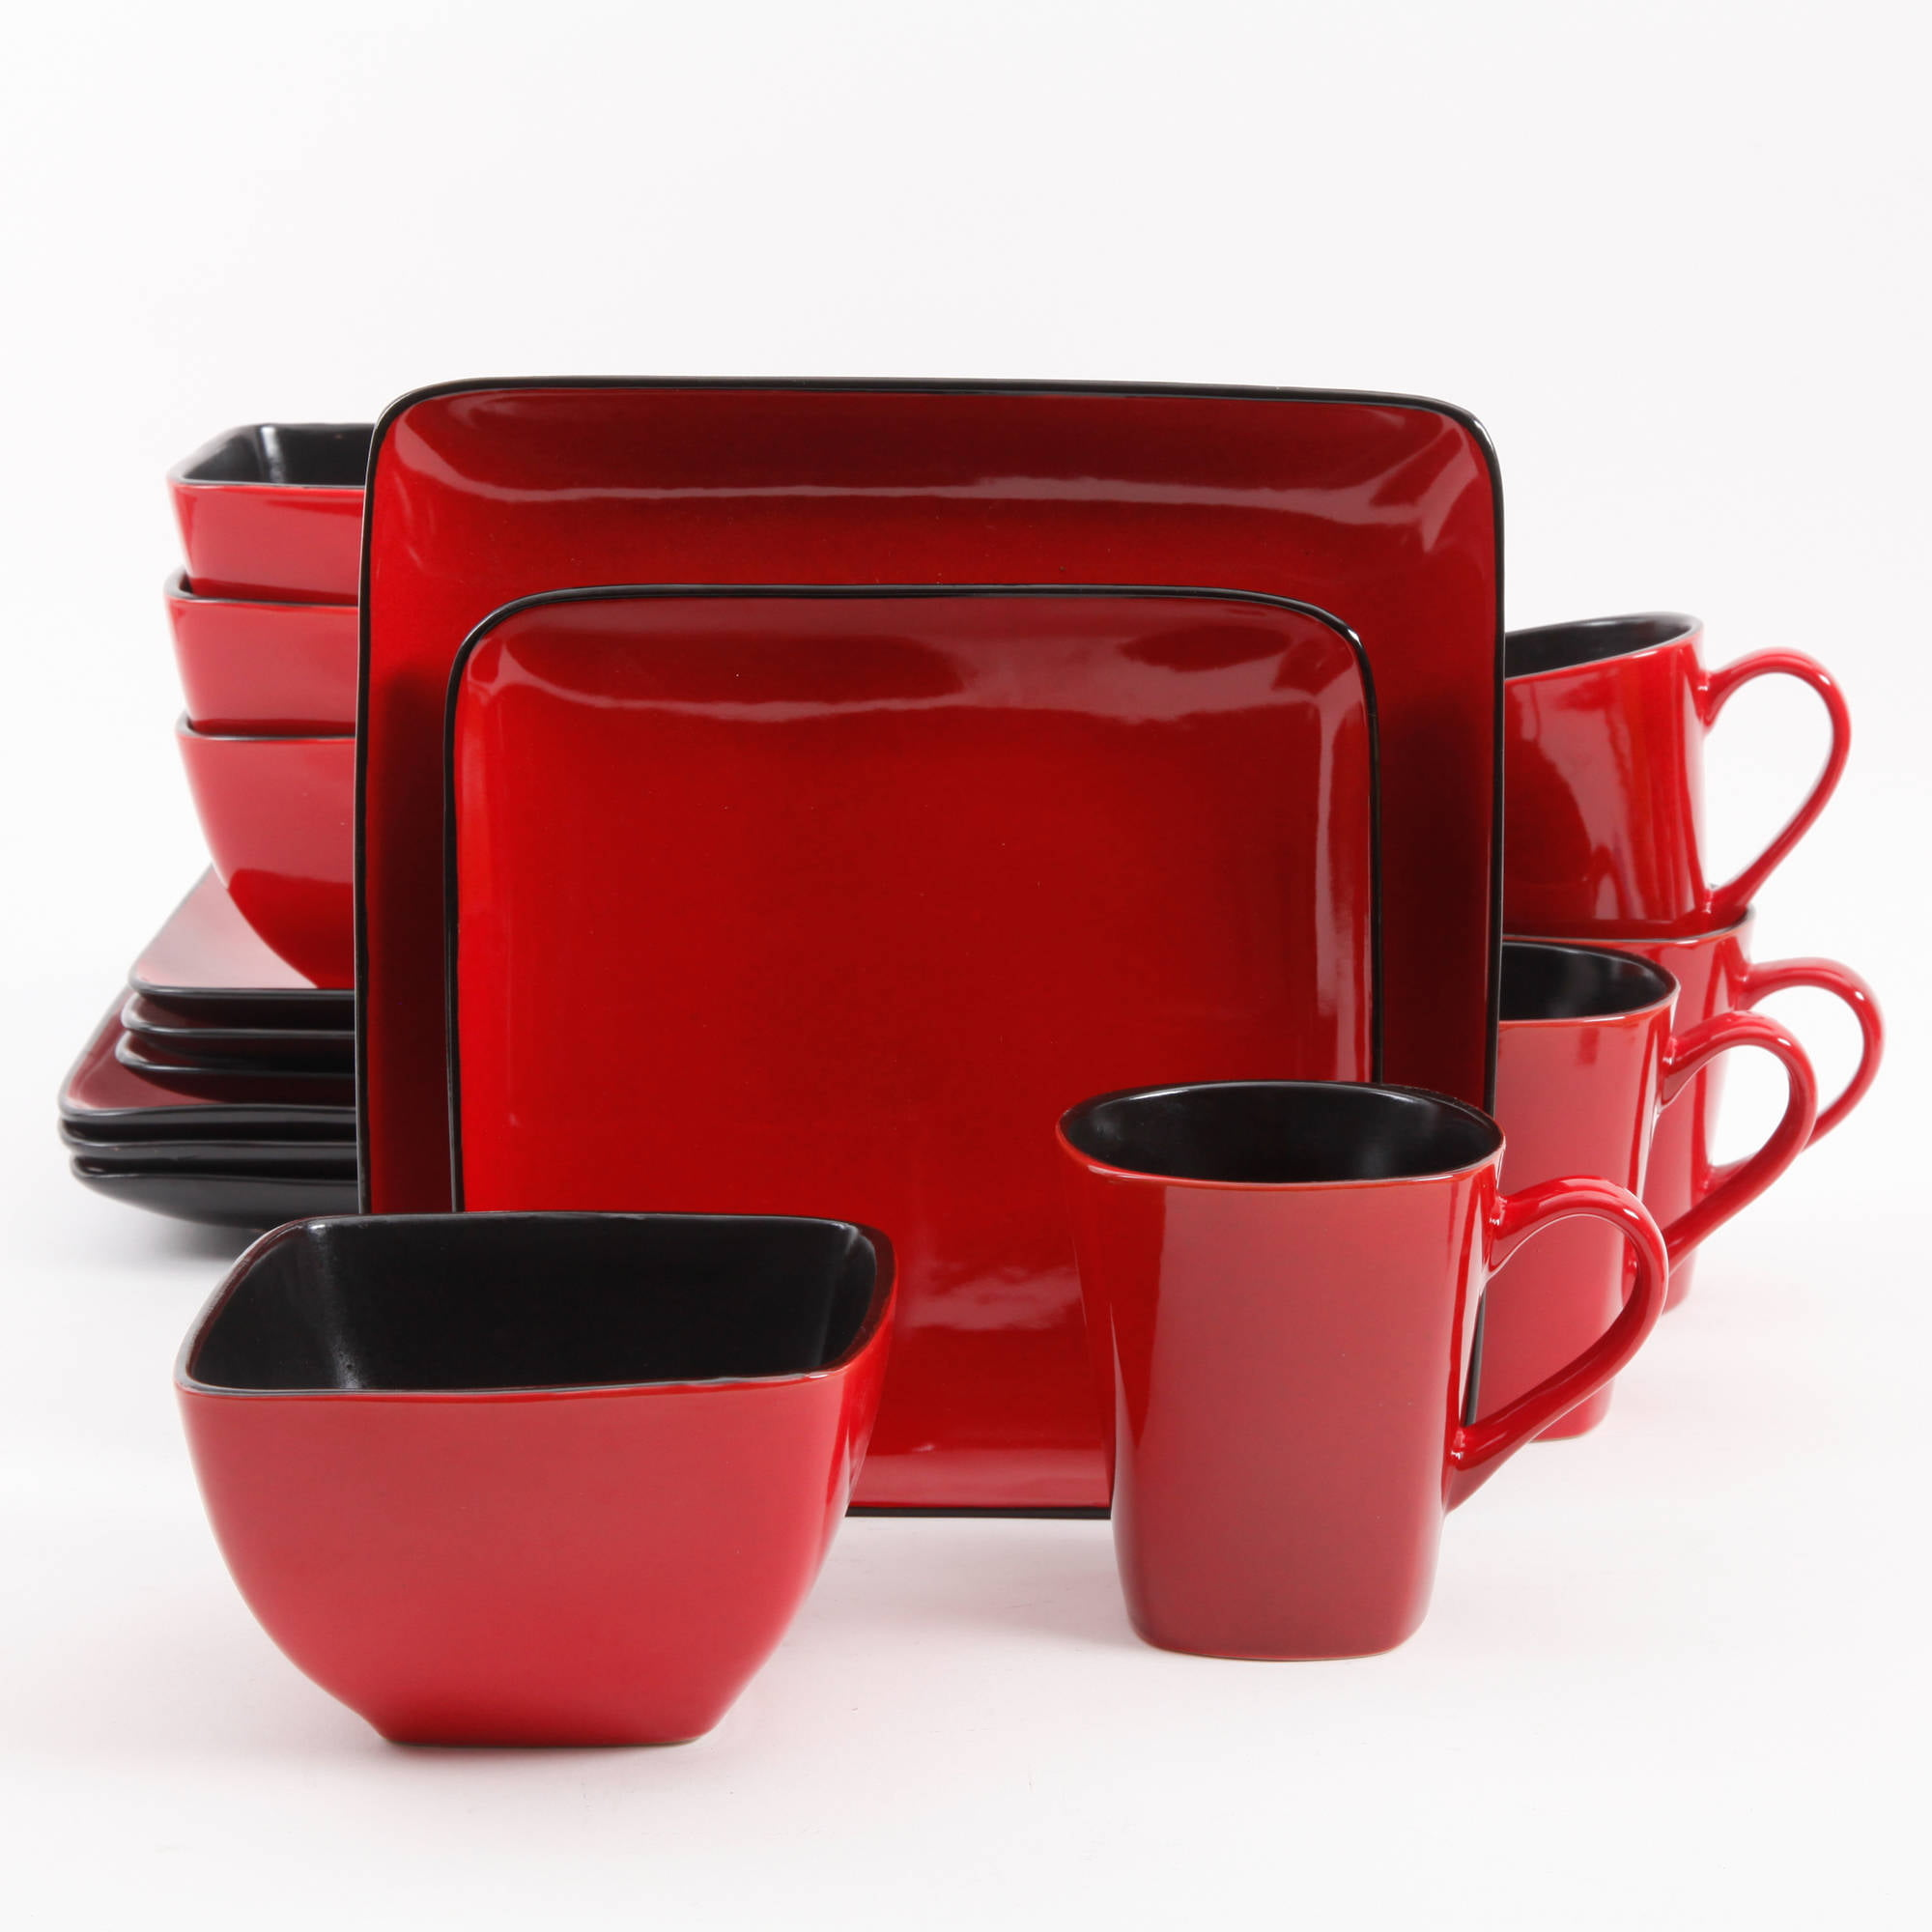 Better Homes and Gardens 32 Piece Square Dinnerware Set Red